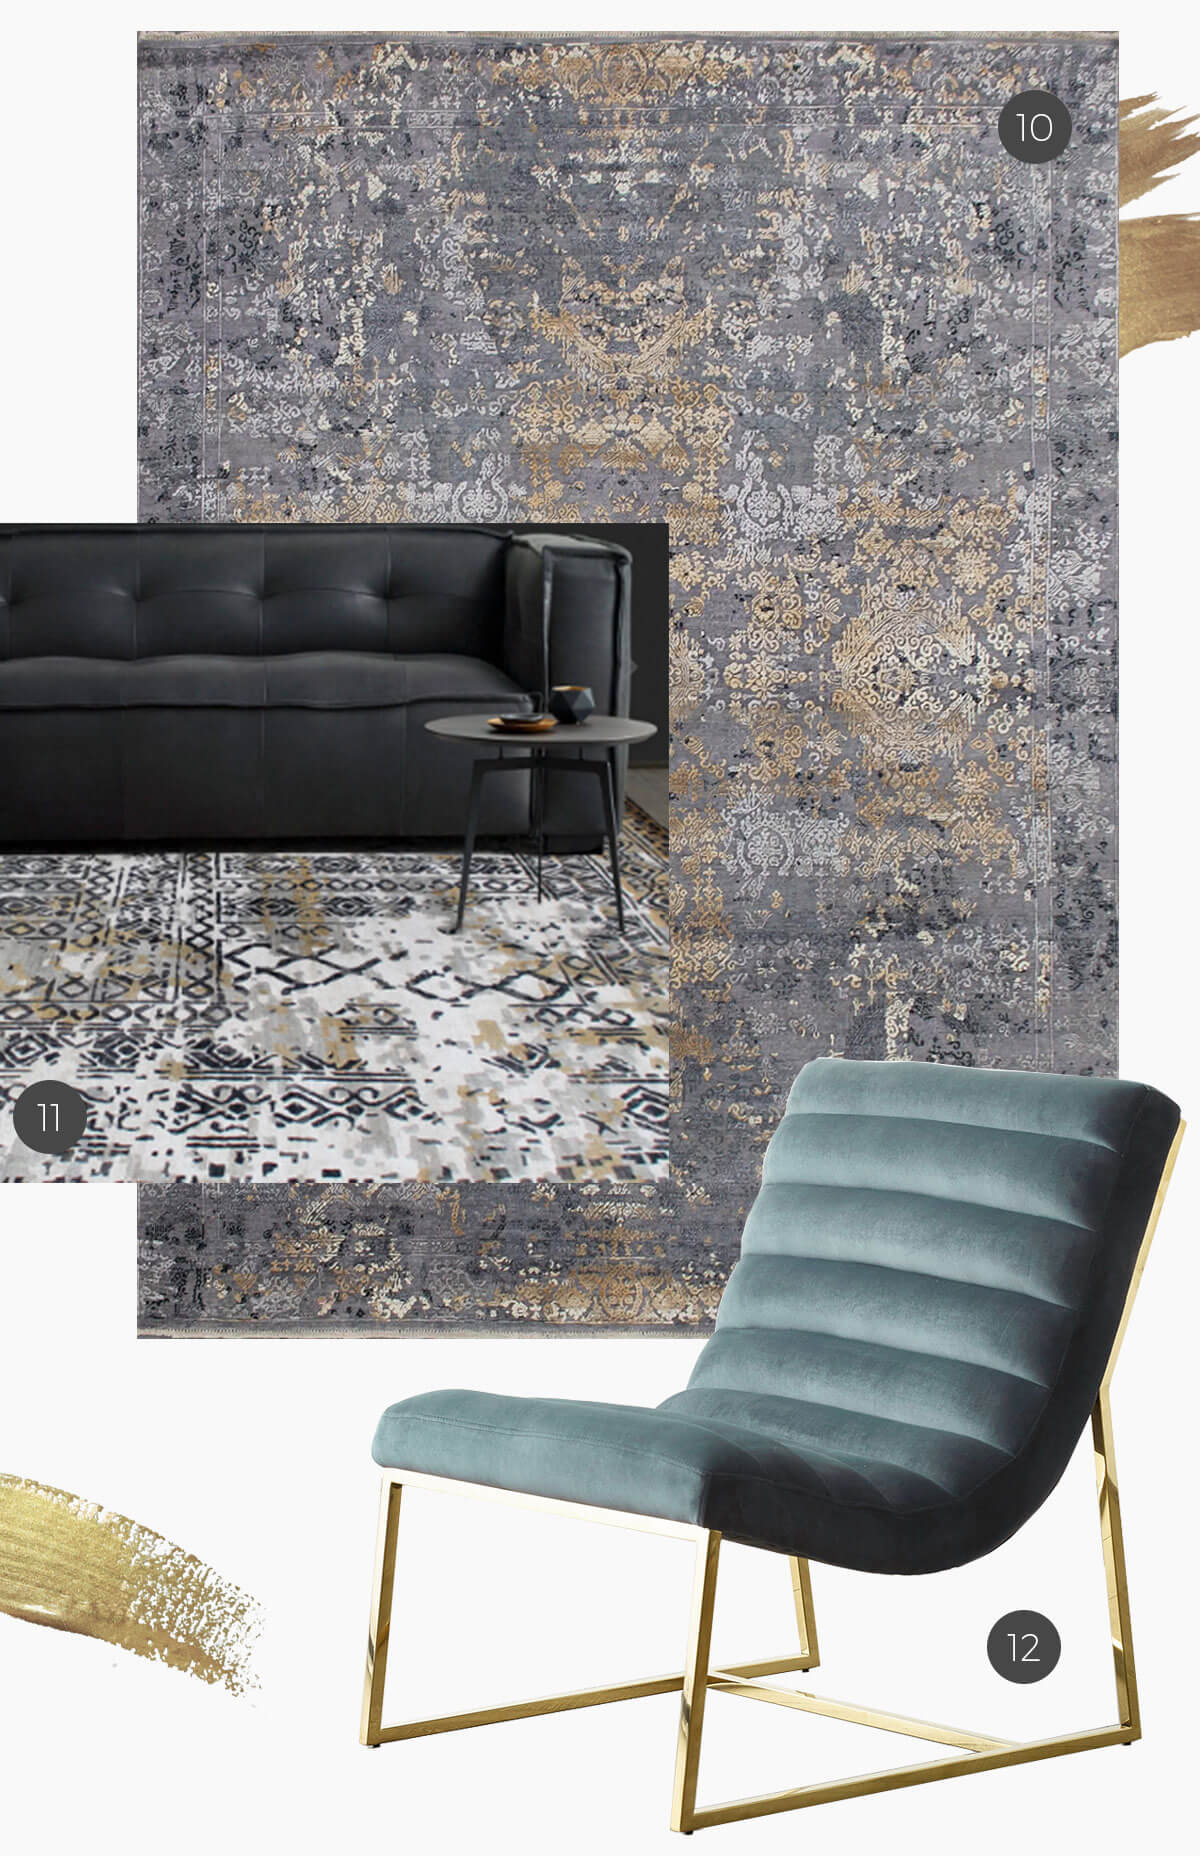 gold accents on rugs and furniture with port velvet chair and winston leather sofa